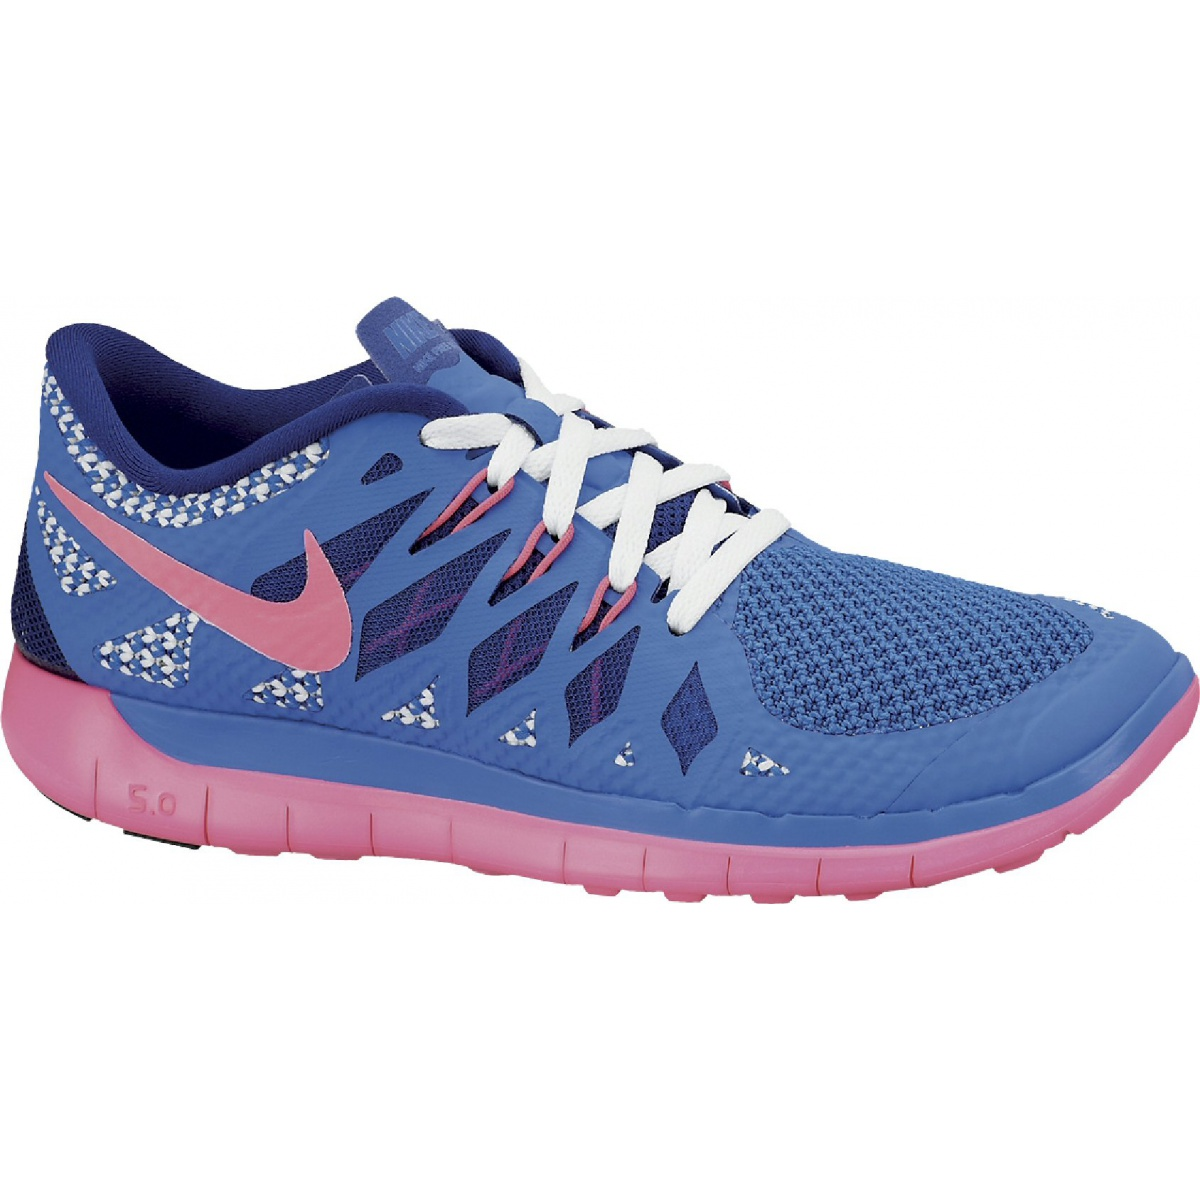 nike free 5 0 2014 blau pink laufschuhe kinder online. Black Bedroom Furniture Sets. Home Design Ideas